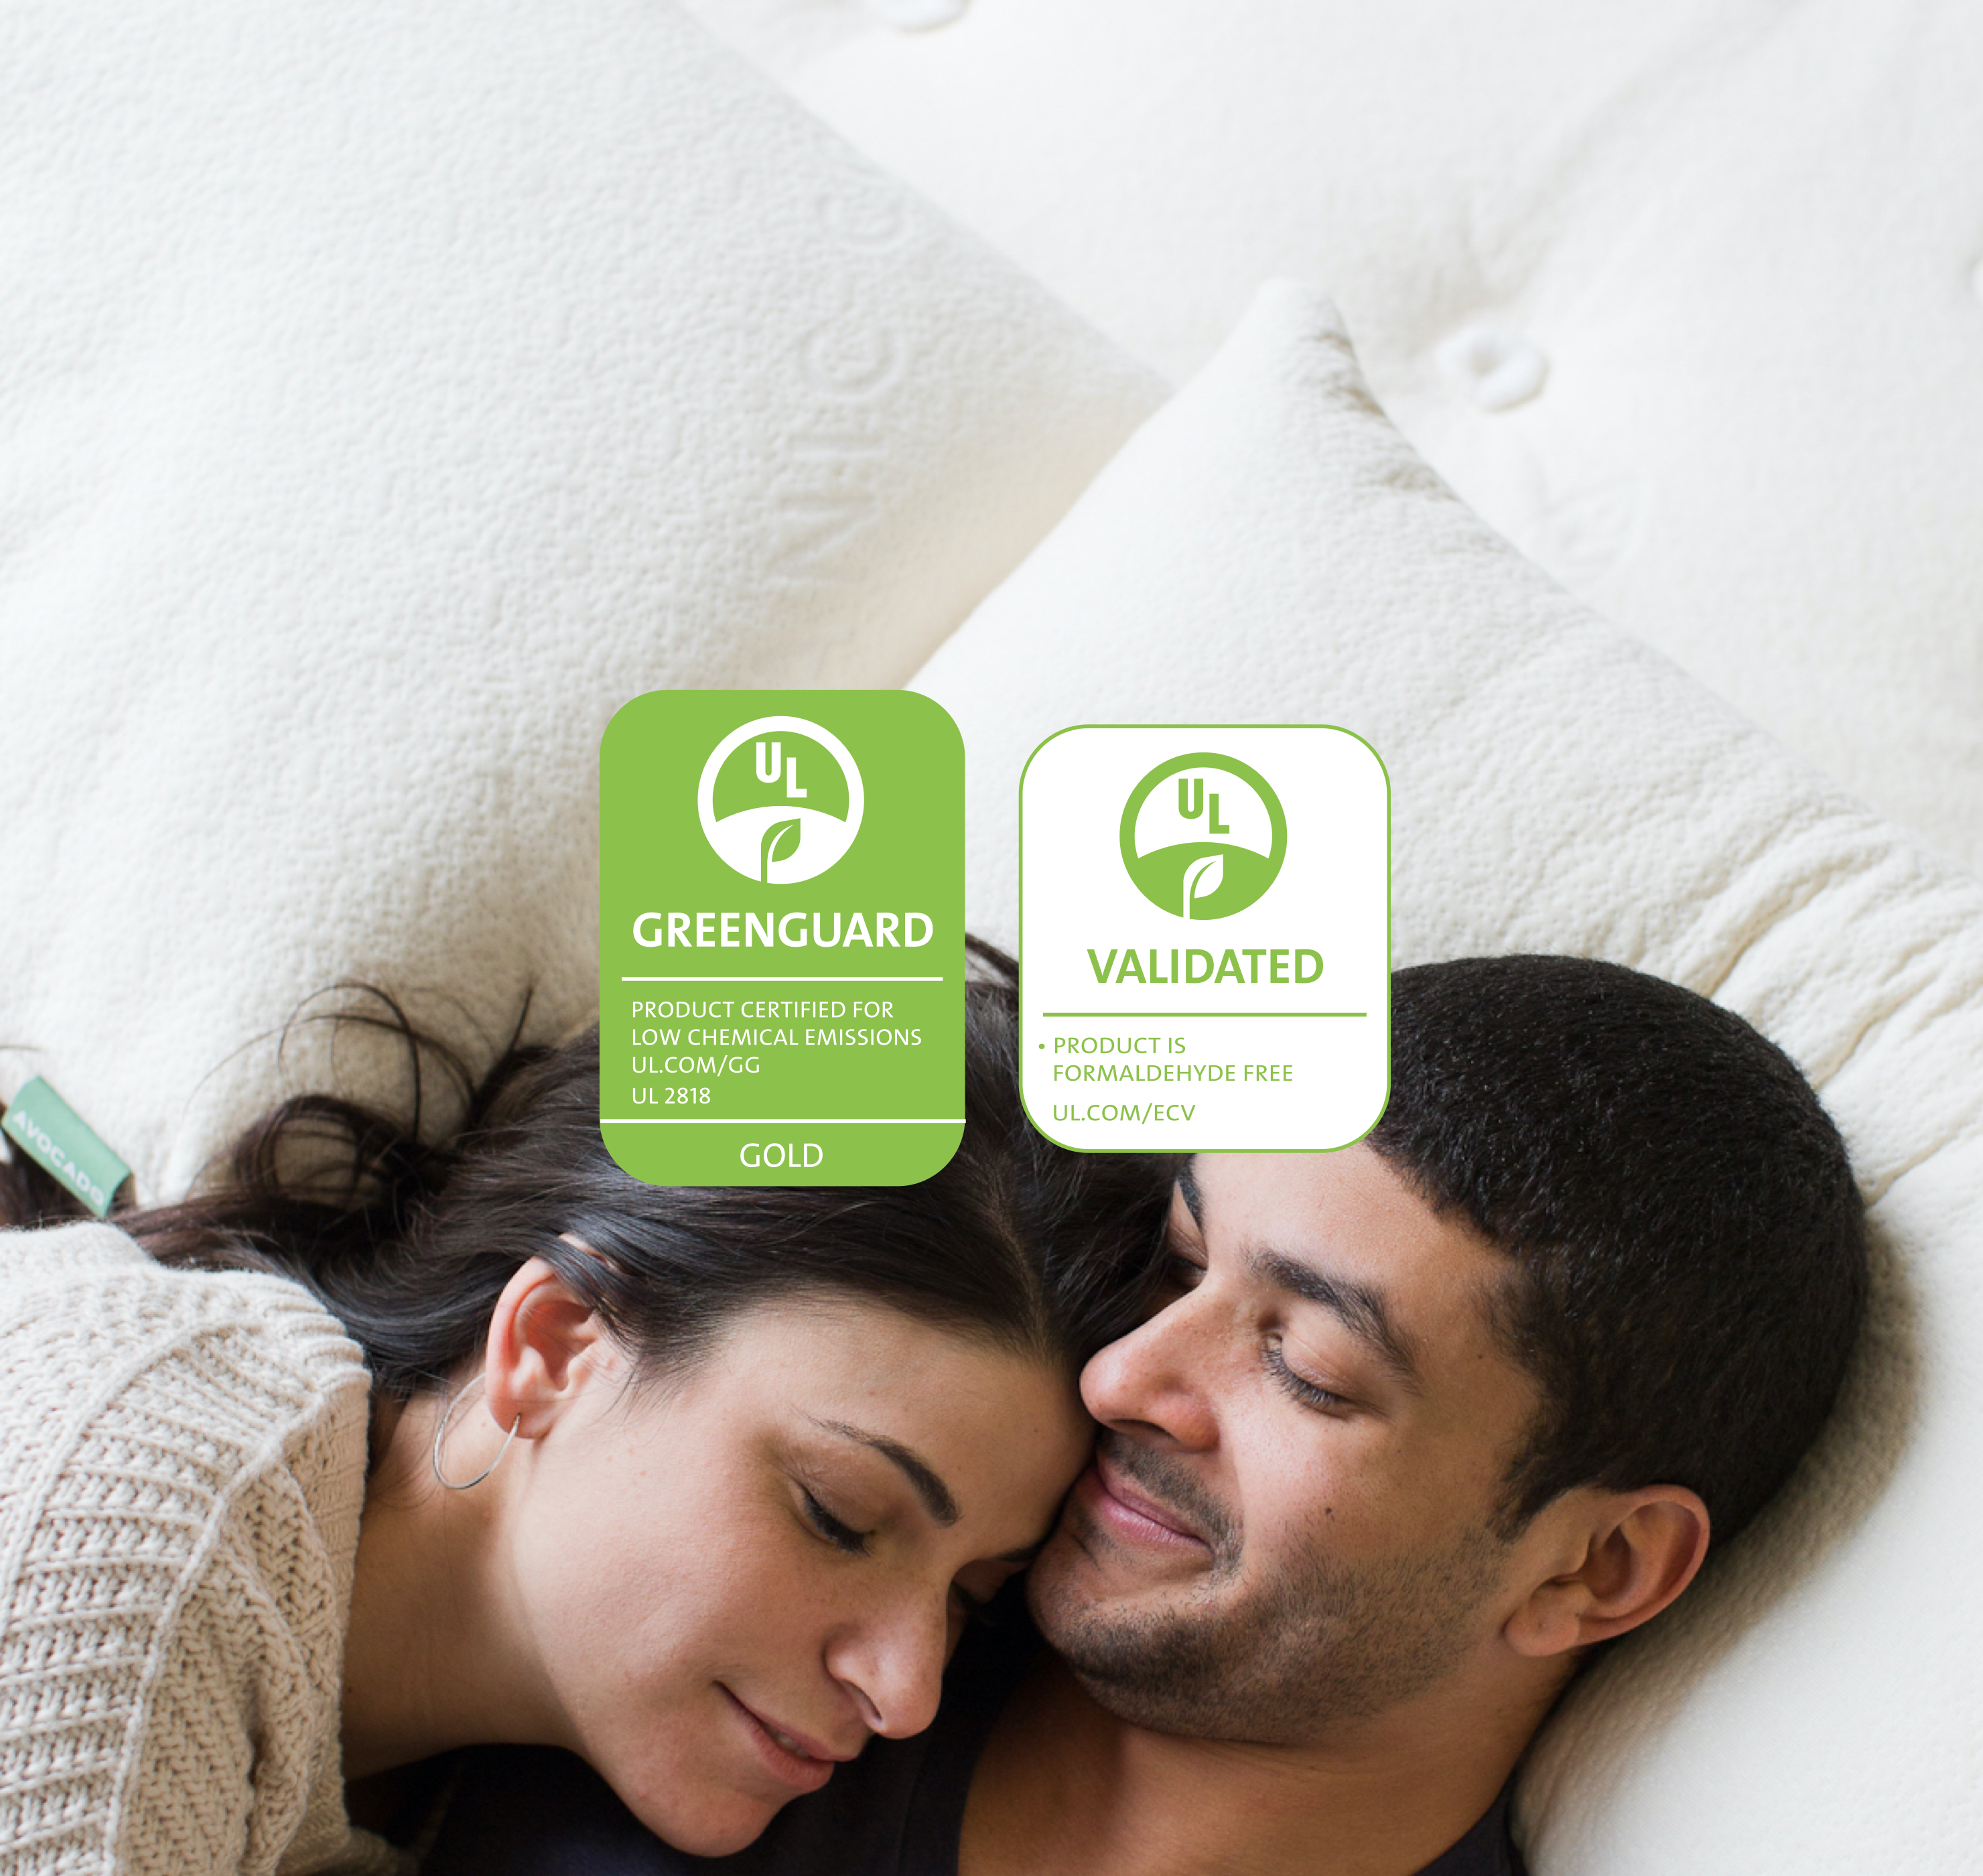 Avocado Green Mattress Greenguard Gold Formaldehyde Free Certified